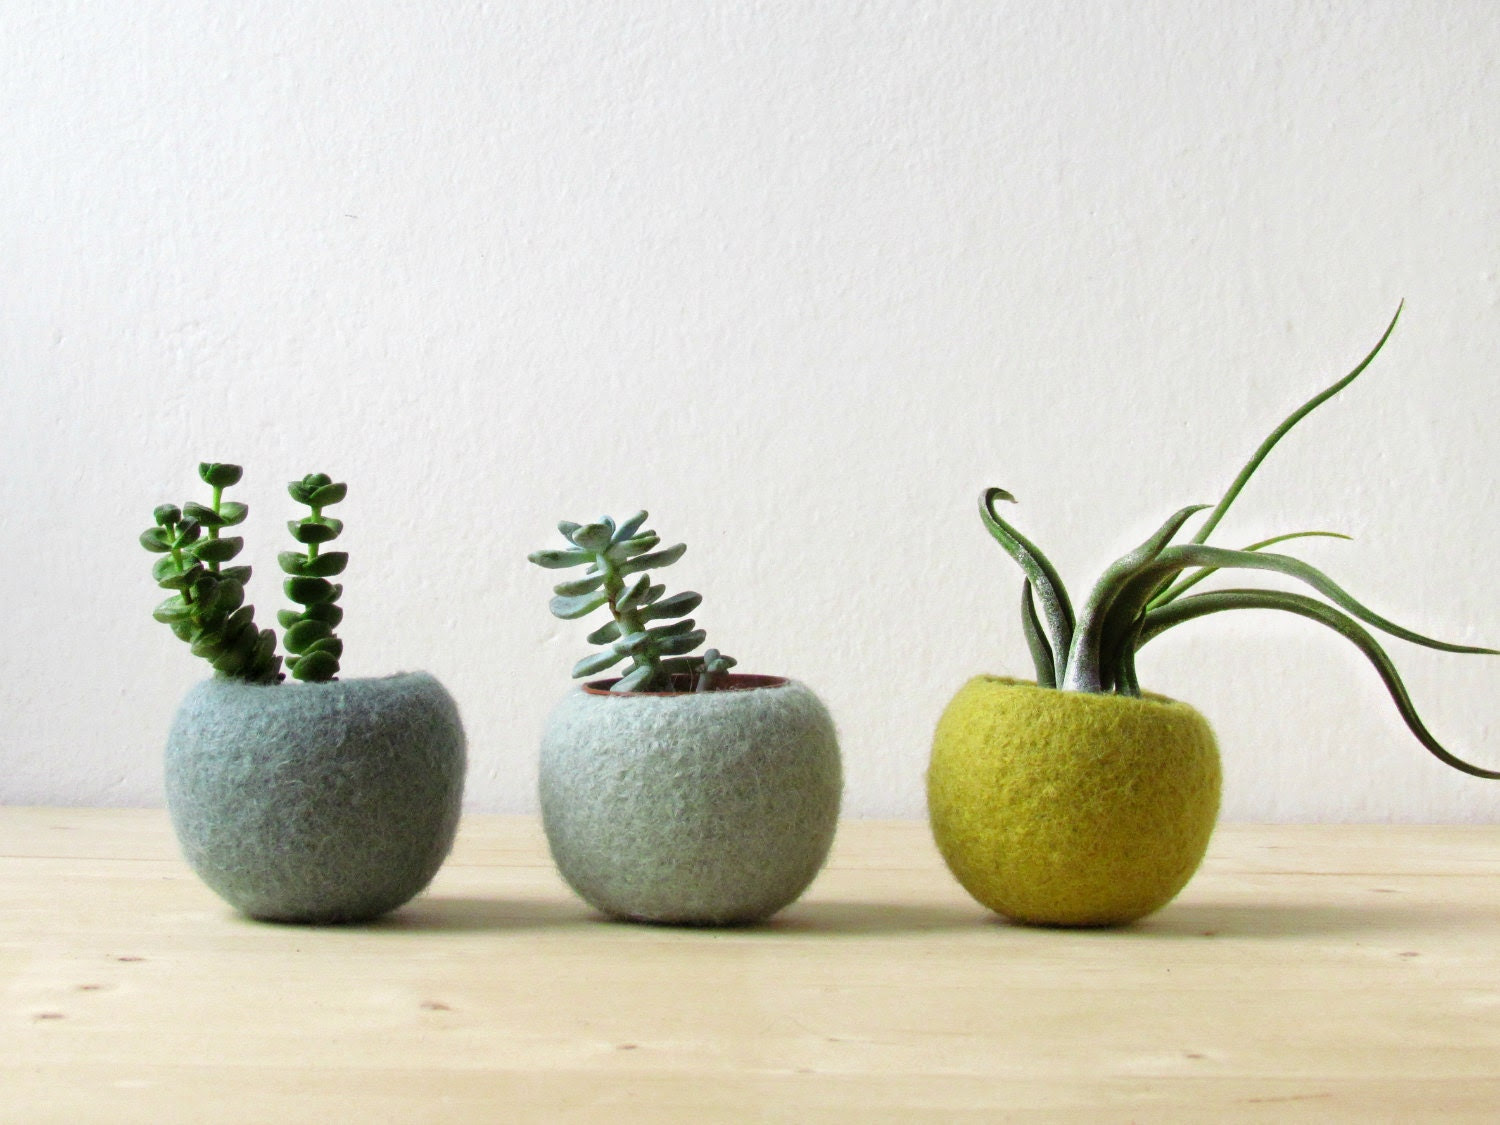 Felt succulent planter / felted pod / Succulent terrarium / Green felt vases / felt bowl / winter decor - theYarnKitchen